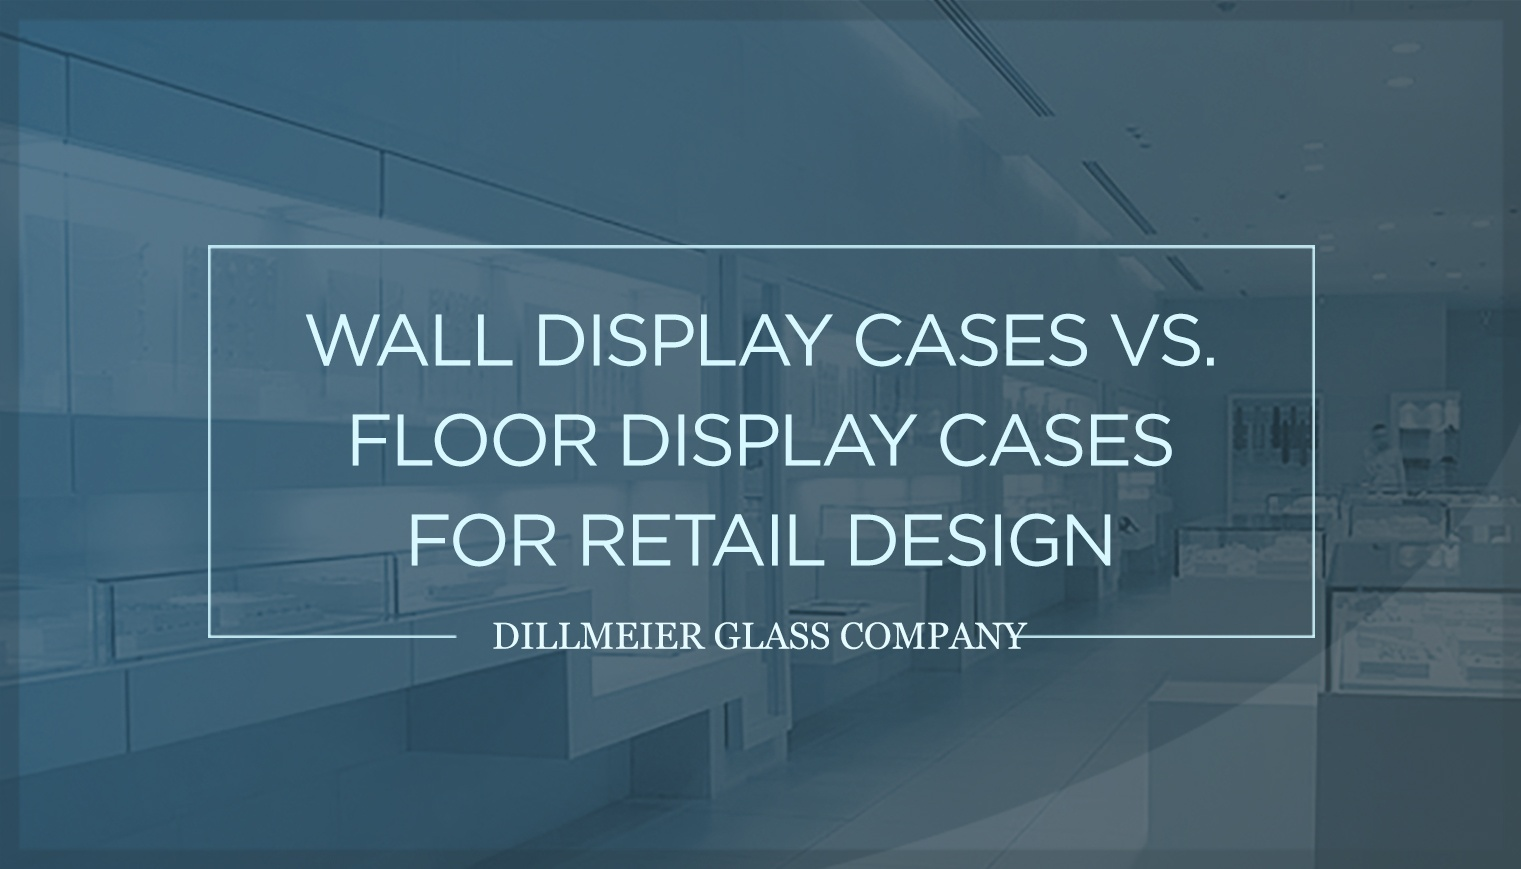 Wall Display Cases vs. Floor Display Cases for Retail Design